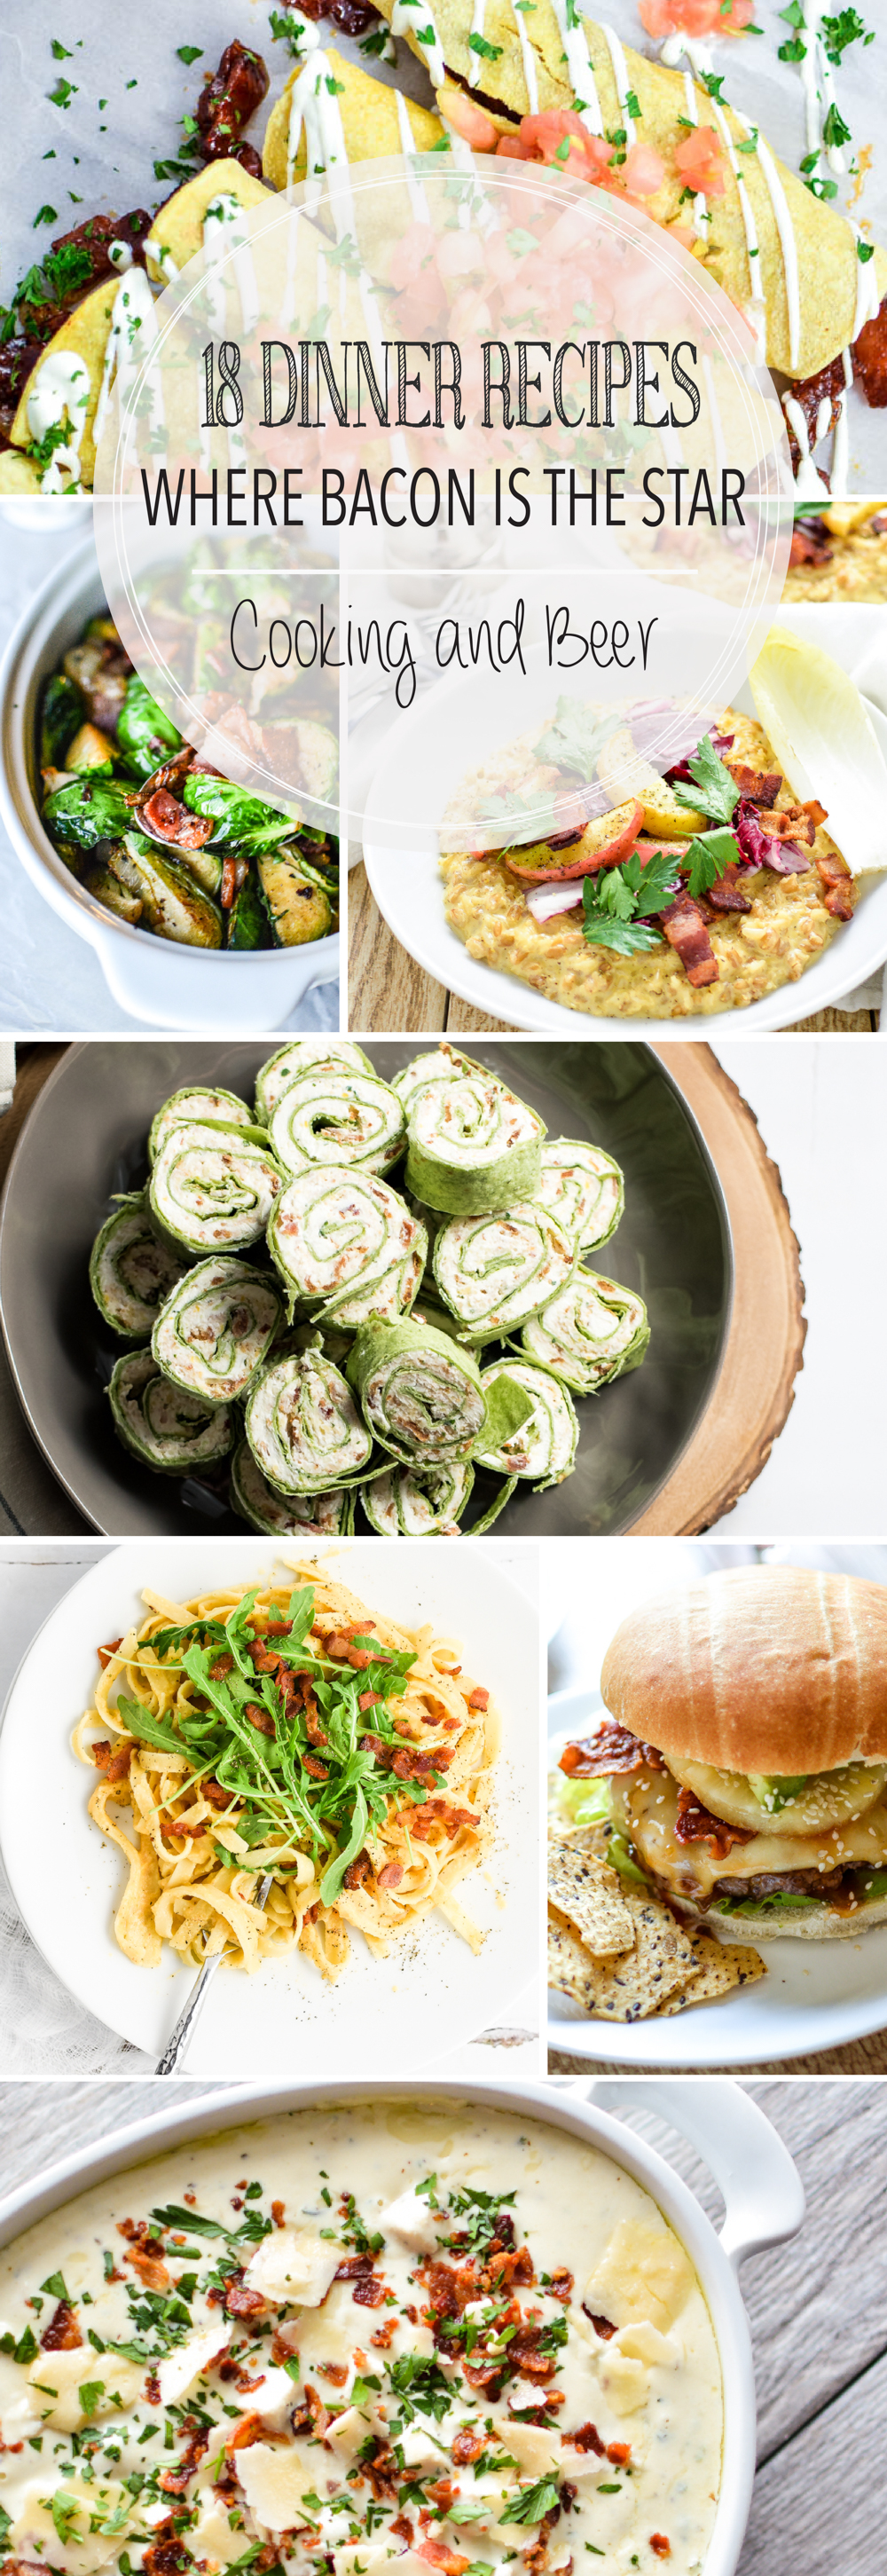 From the perfect side dishes to twice baked potatoes and from soup to tacos, here are 18 dinner recipes to make your weeknights more flavorful!